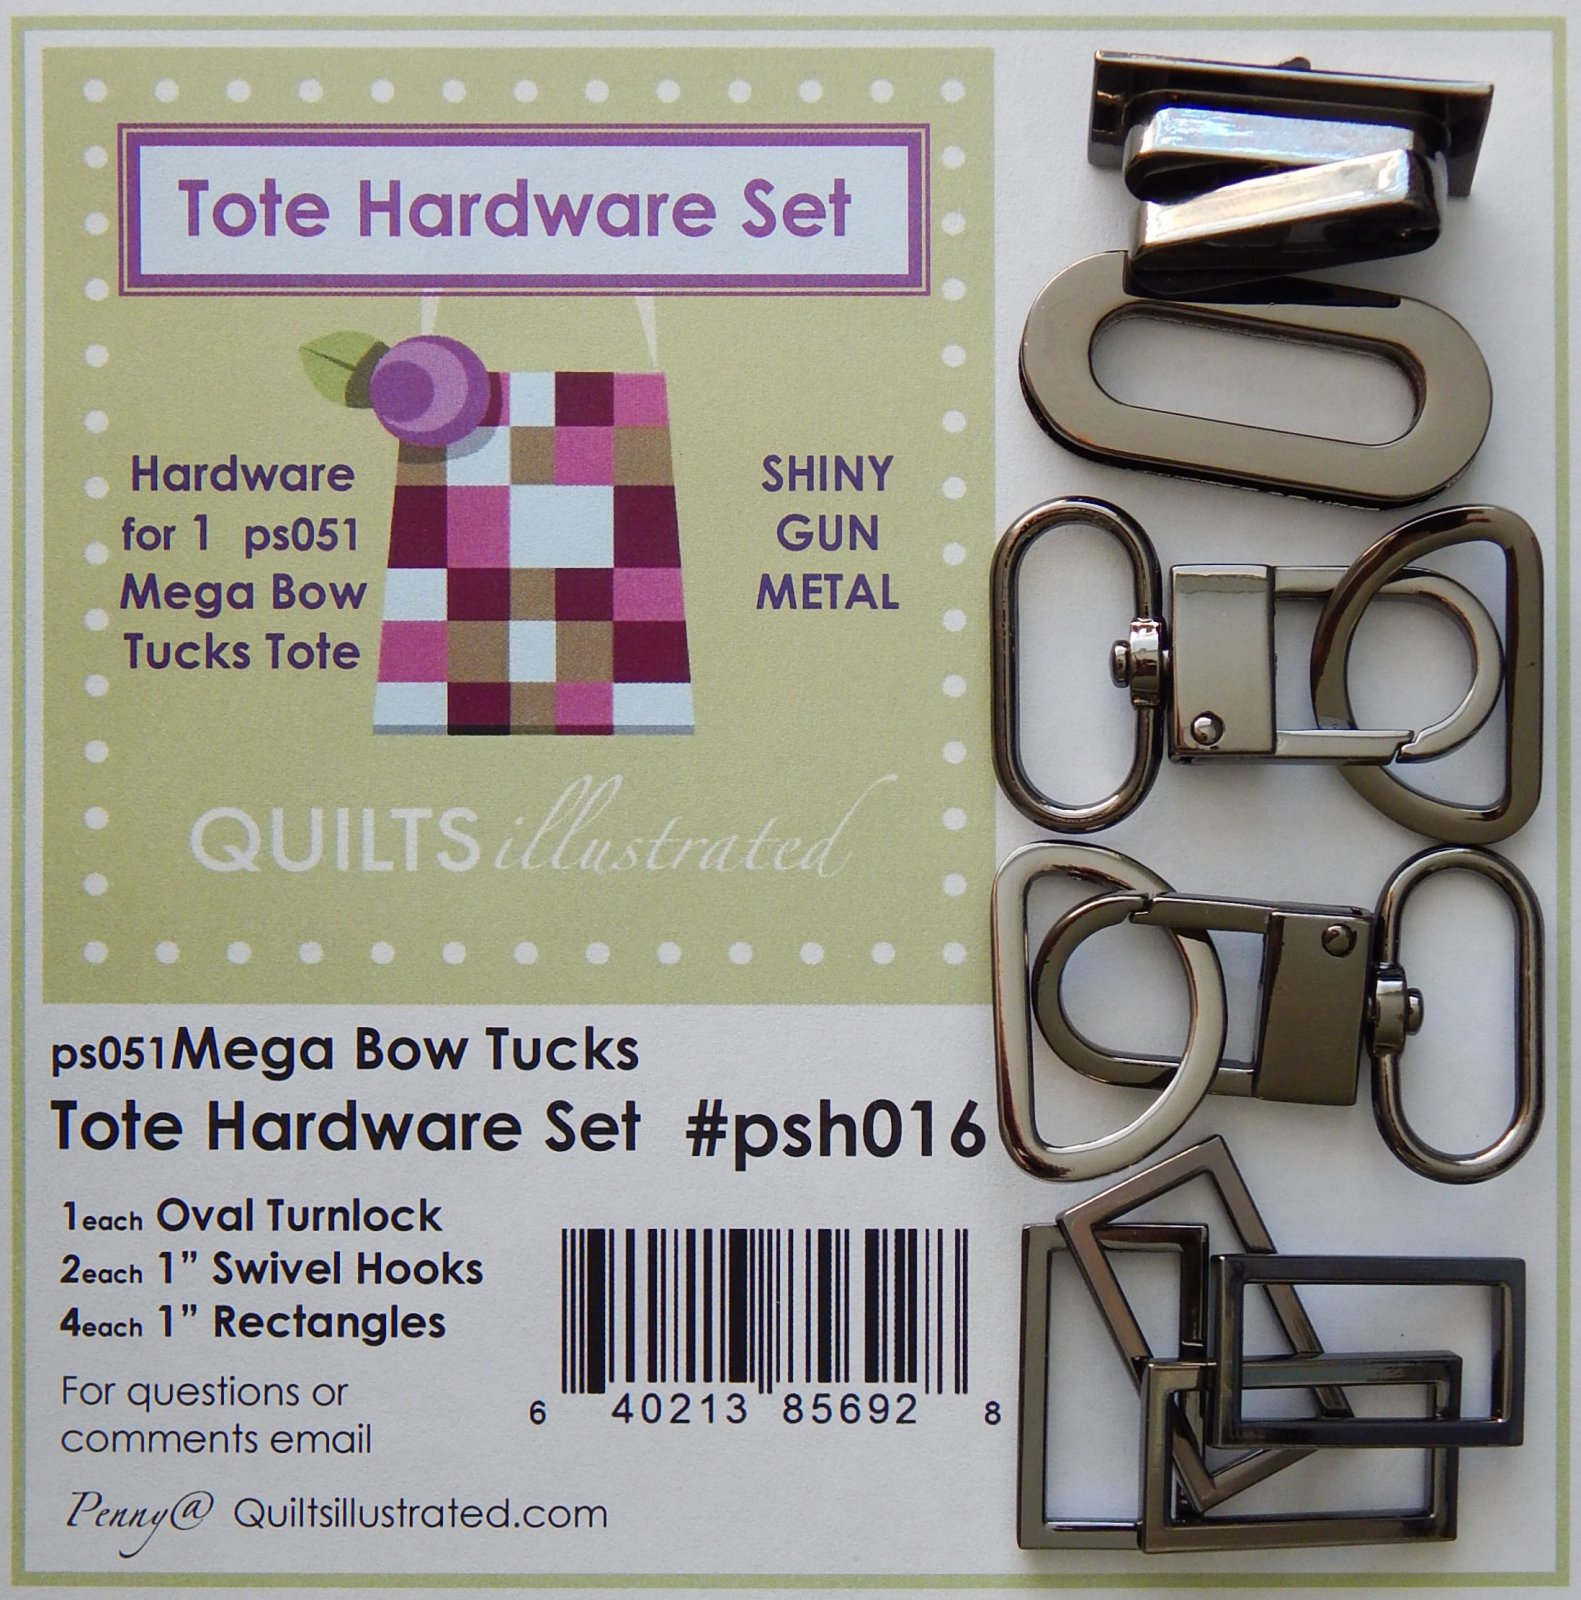 Tote Hardware Set- Shiny Gun Metal (psh016)